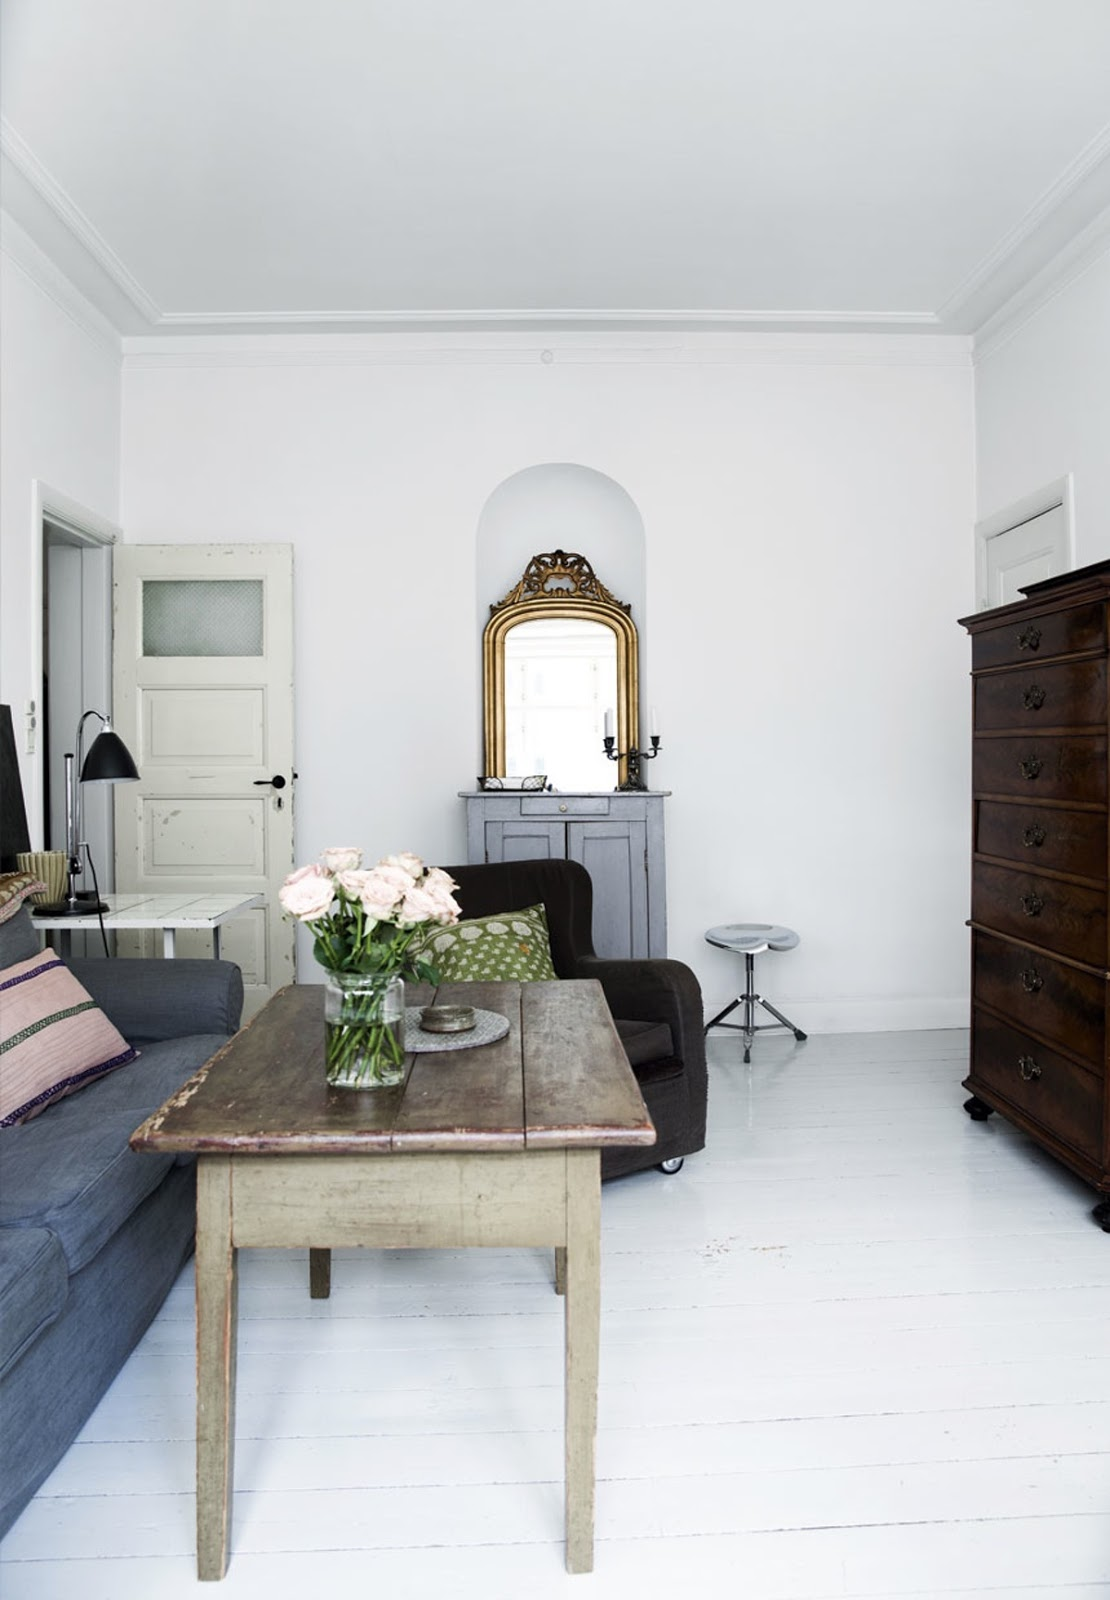 The apartment is beautifully decorated with dusty colors and soft fabrics,  reminiscent of French bohemian. A little piece of Paris in the middle of  Amager!